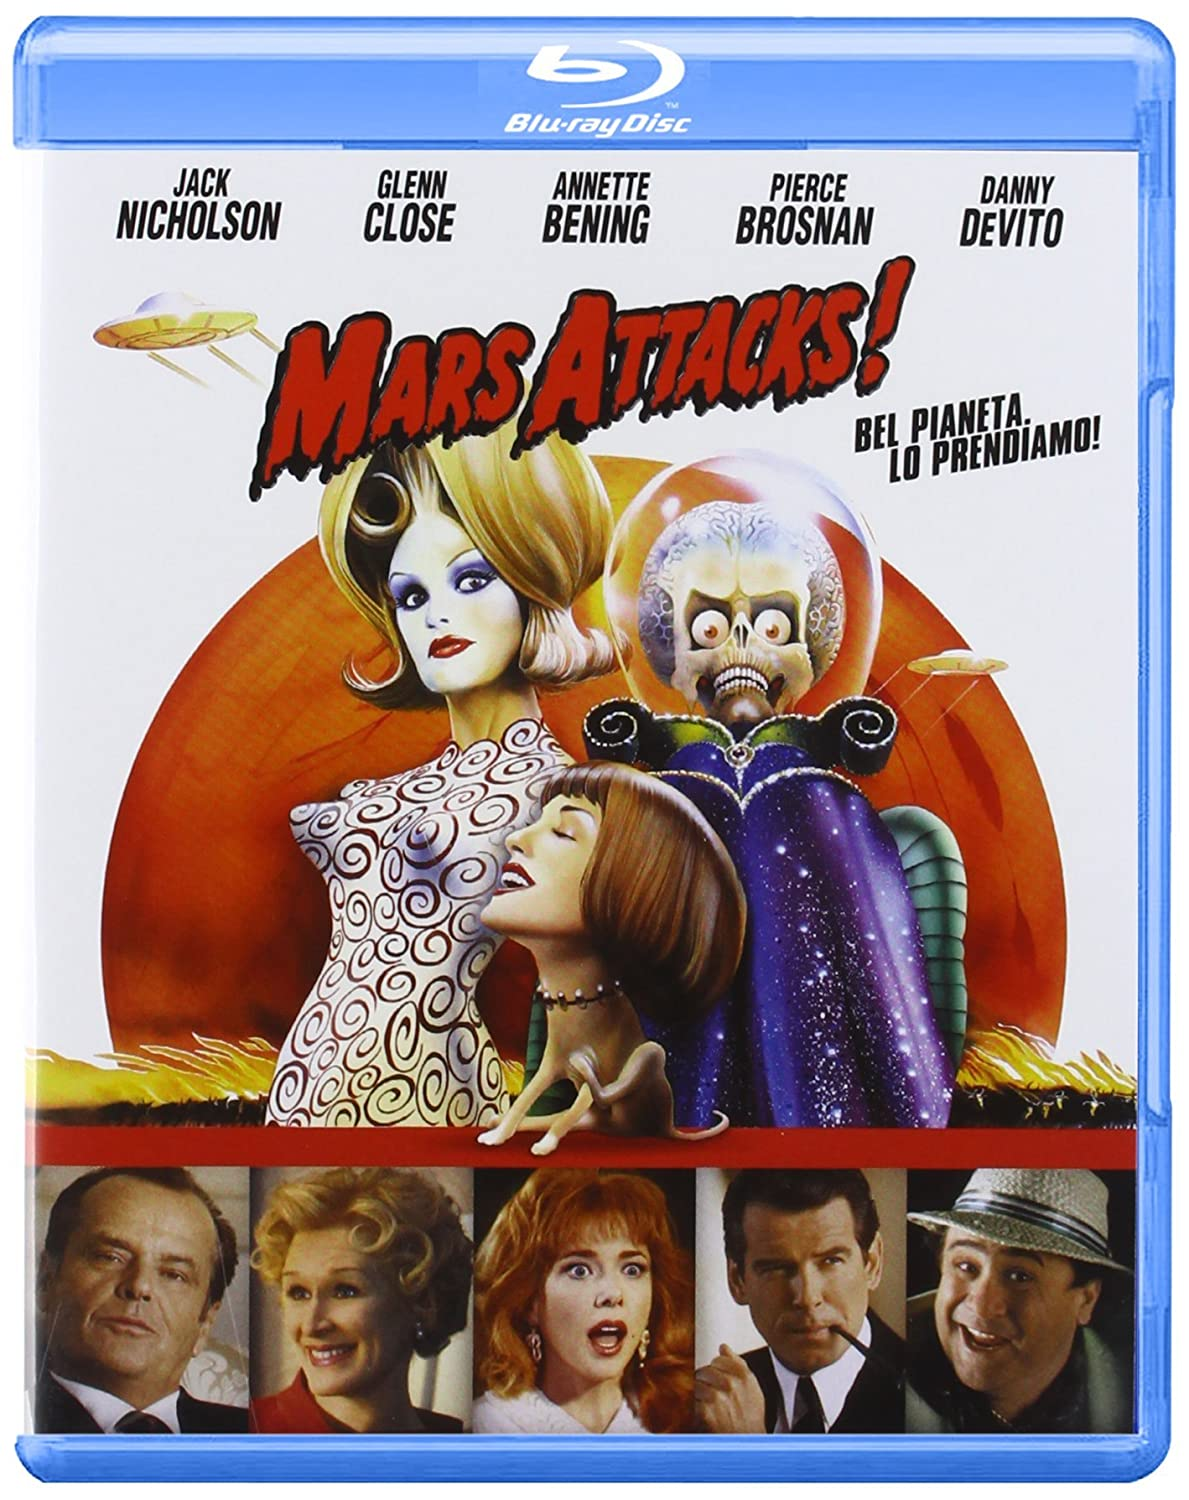 MARS ATTACKS! (BLU-RAY )